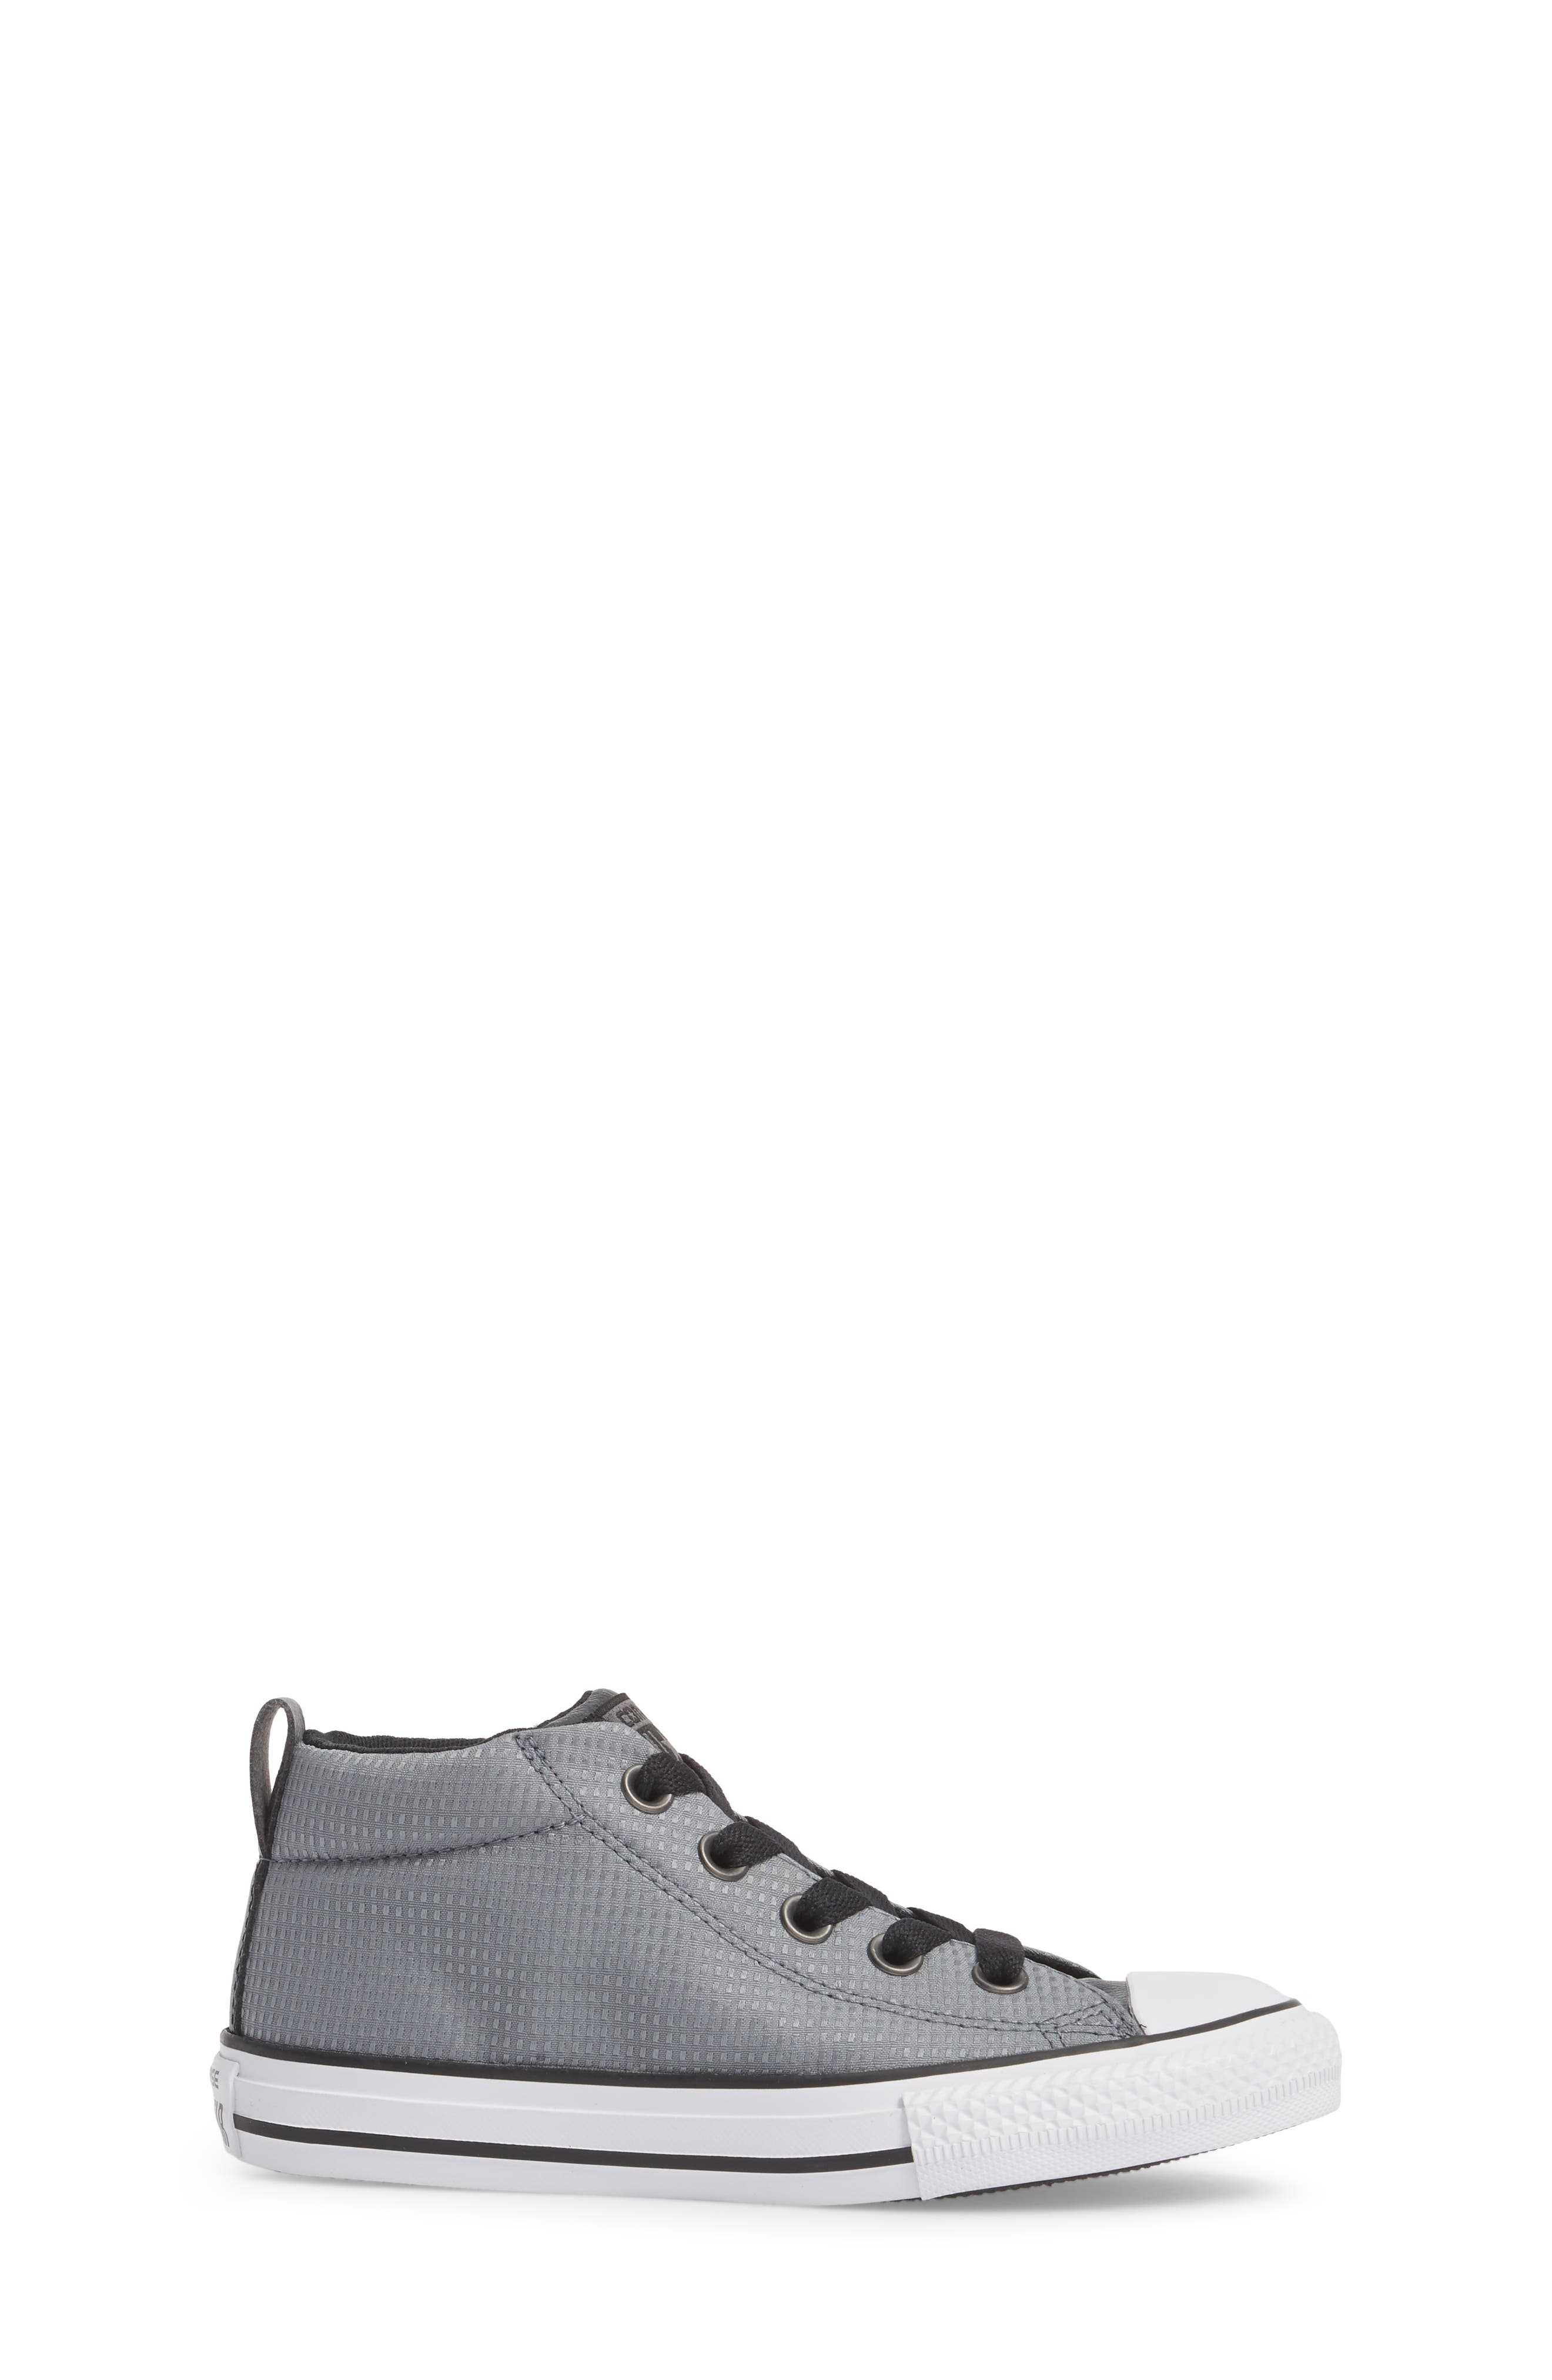 Chuck Taylor<sup>®</sup> All Star<sup>®</sup> Street Mid Backpack Sneaker,                             Alternate thumbnail 3, color,                             039